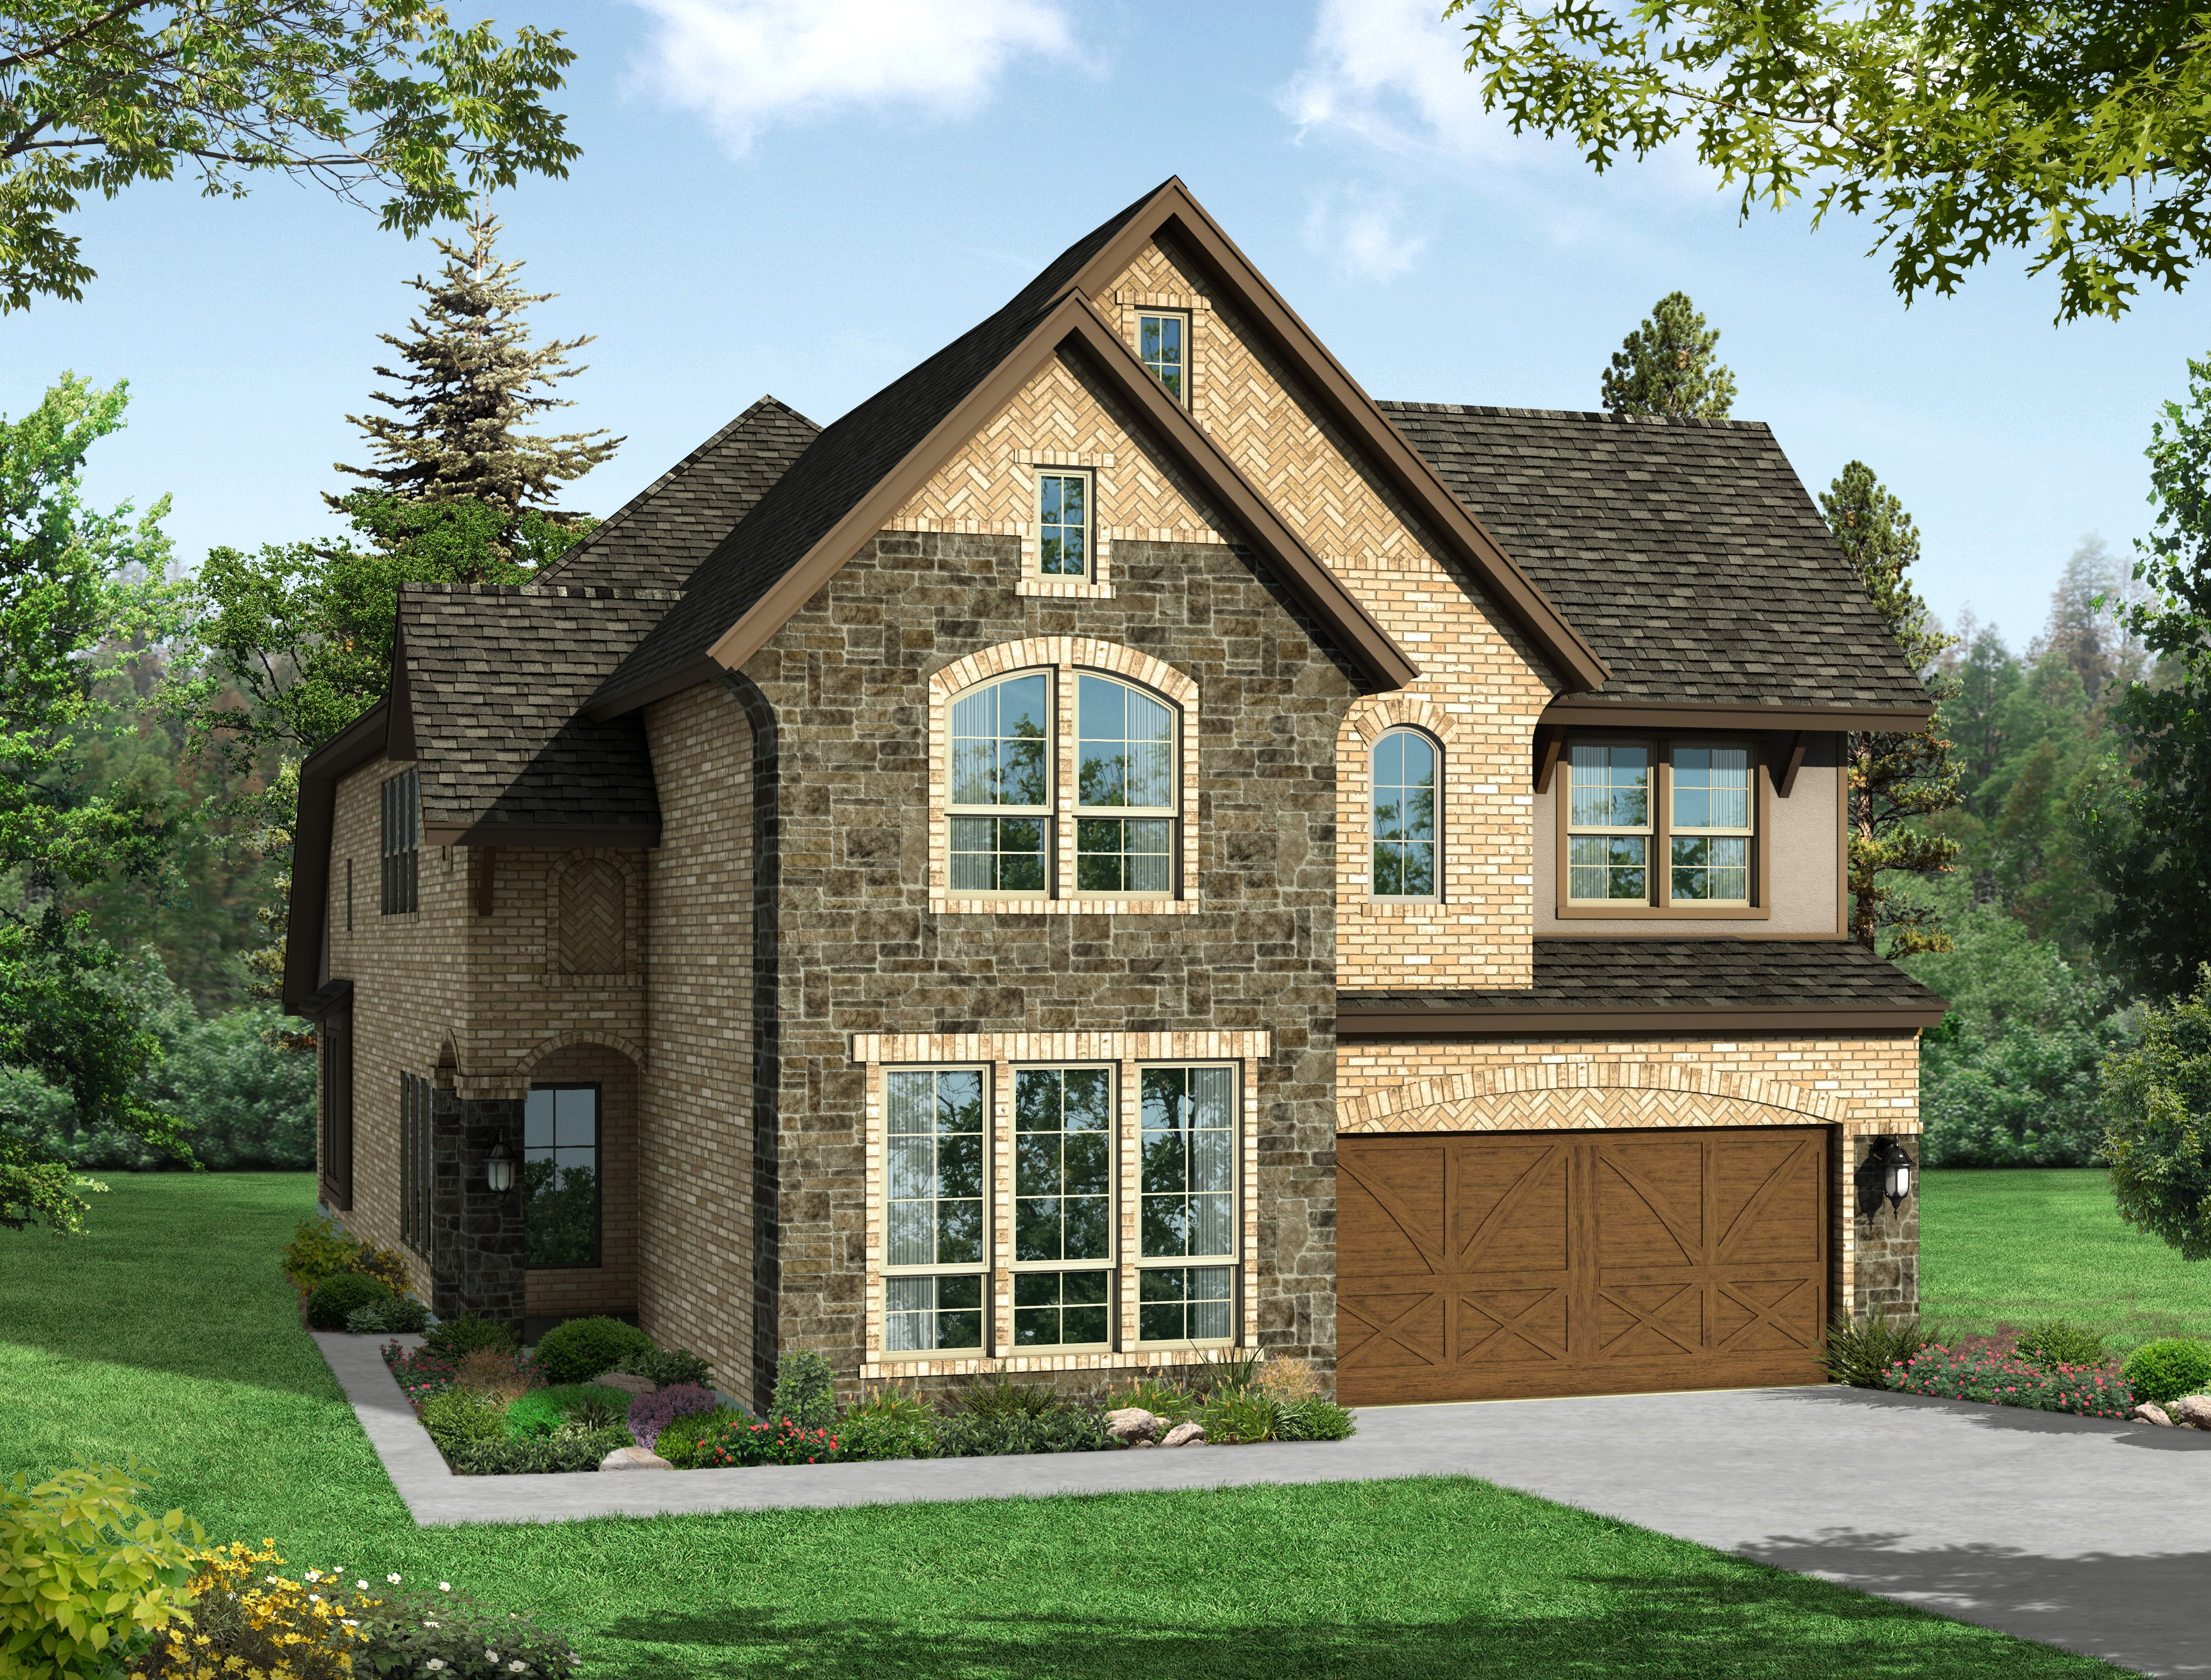 normandy homes dallas tx communities u0026 homes for sale newhomesource